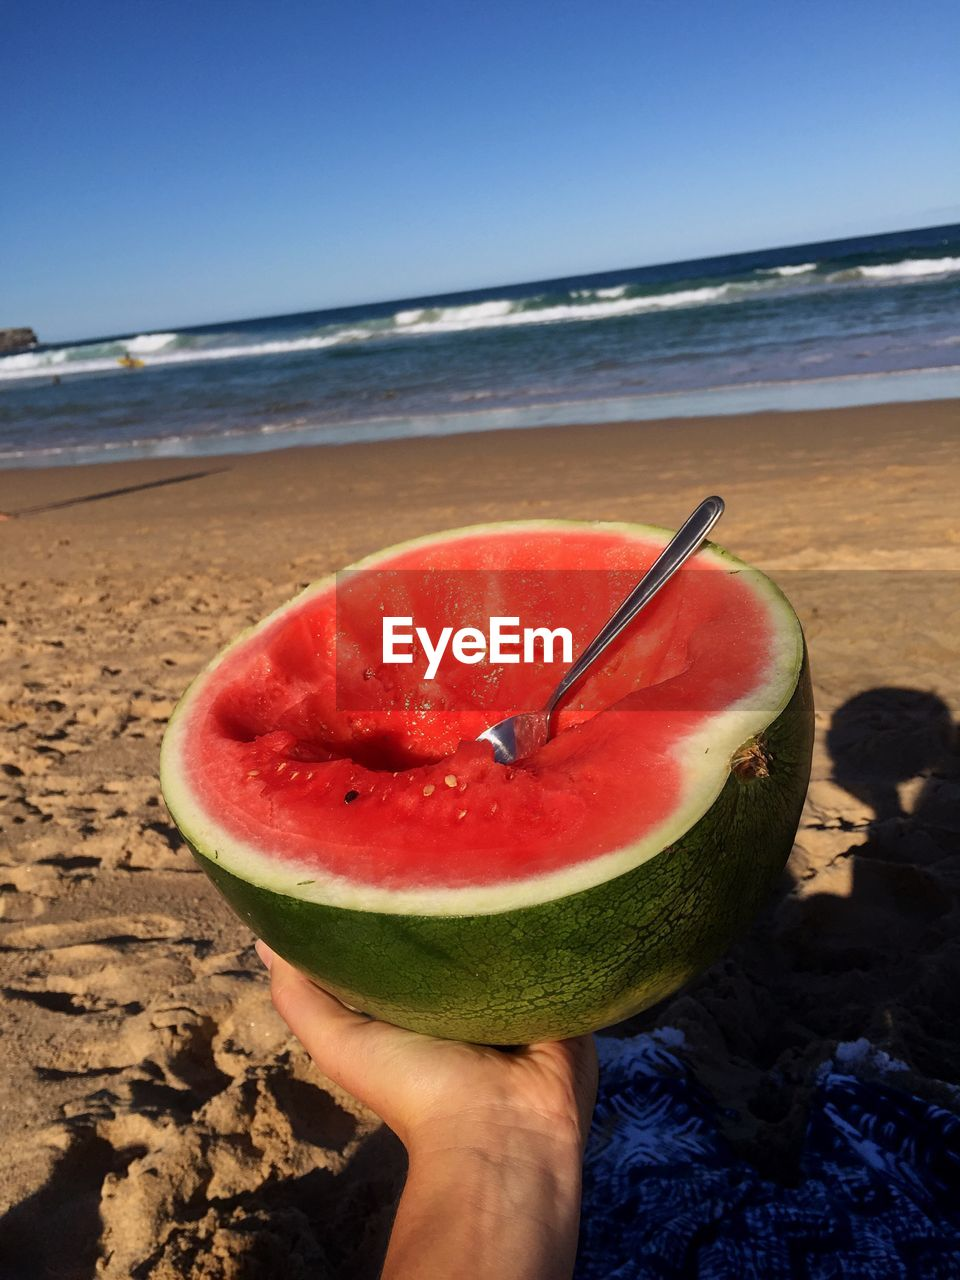 fruit, healthy eating, food and drink, beach, freshness, watermelon, holding, slice, sea, shore, human hand, sand, real people, one person, refreshment, nature, food, healthy lifestyle, human body part, lifestyles, outdoors, horizon over water, day, beauty in nature, close-up, water, sky, clear sky, people